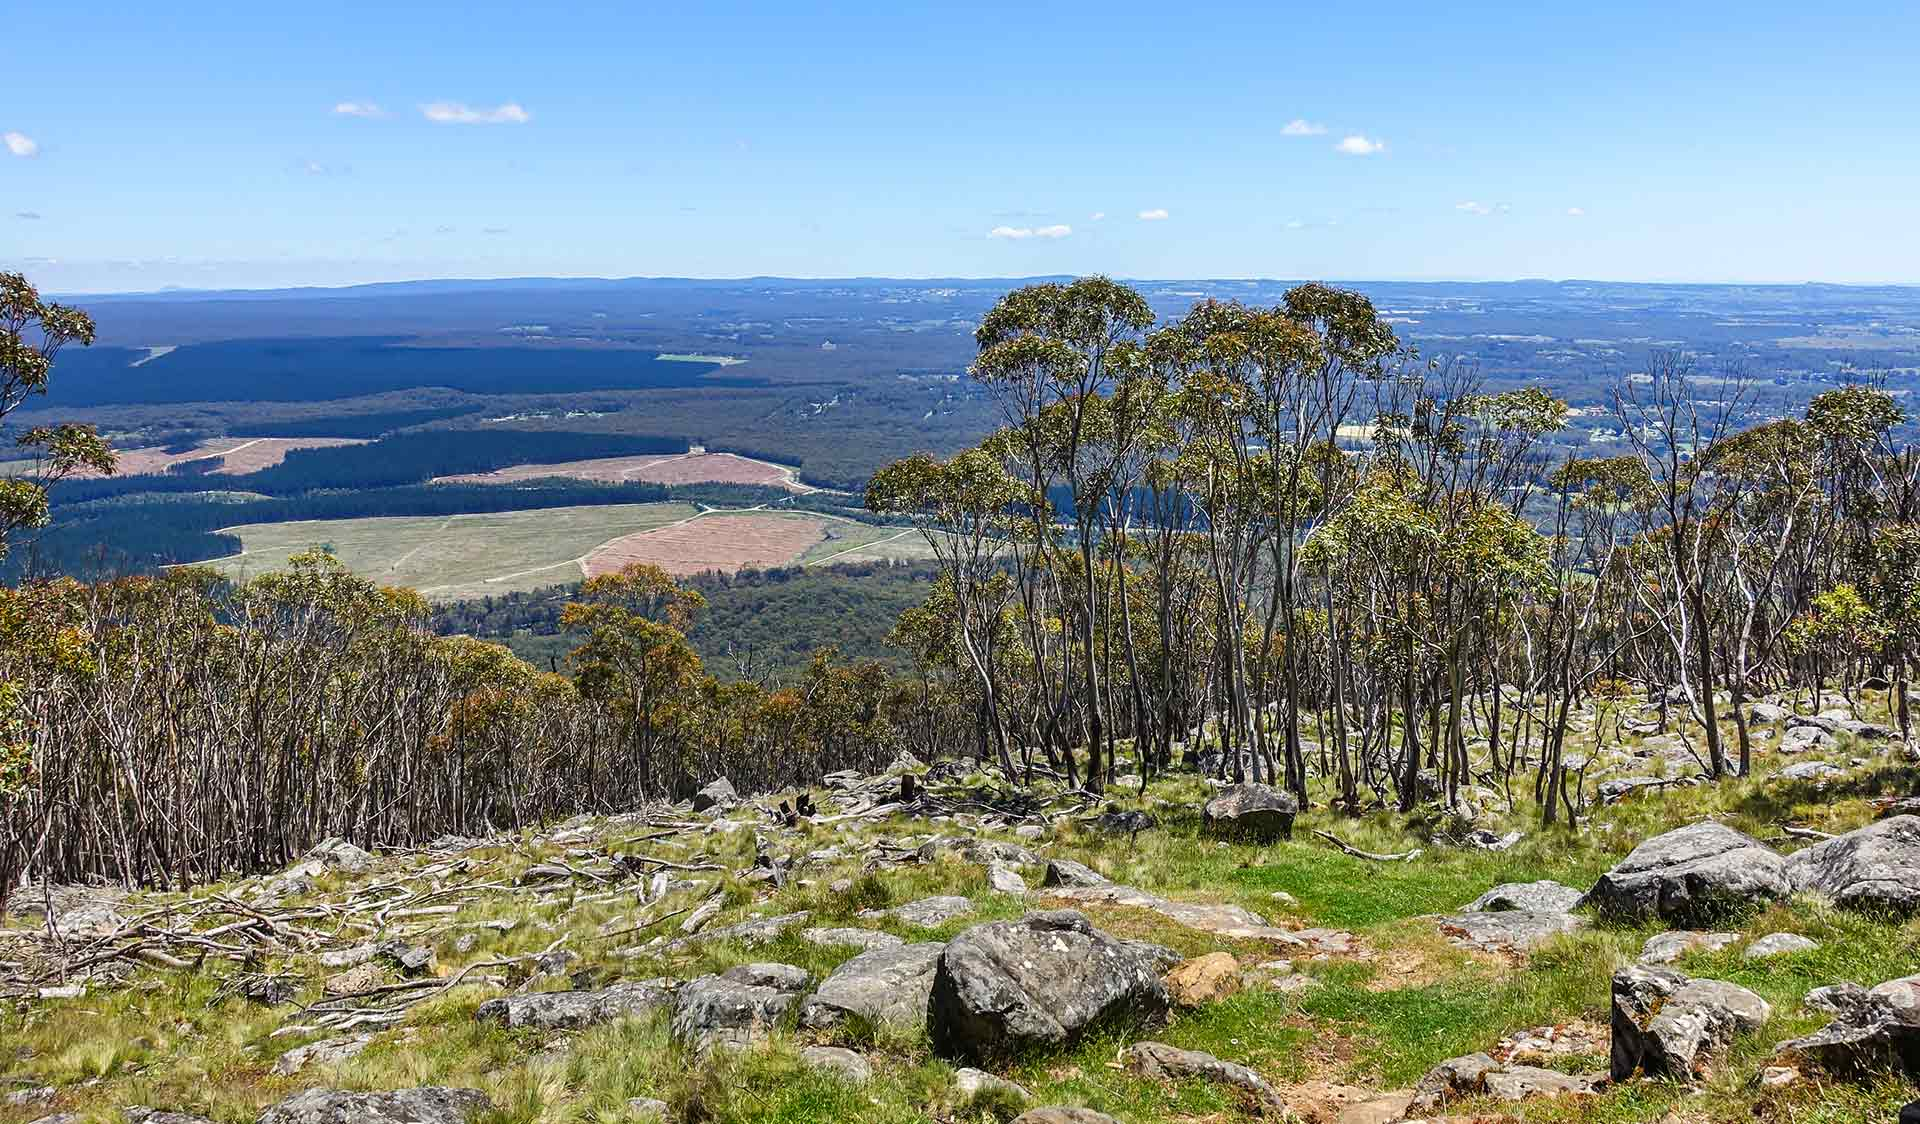 The view of the surrounding flats from near the summit of Mount Macedon